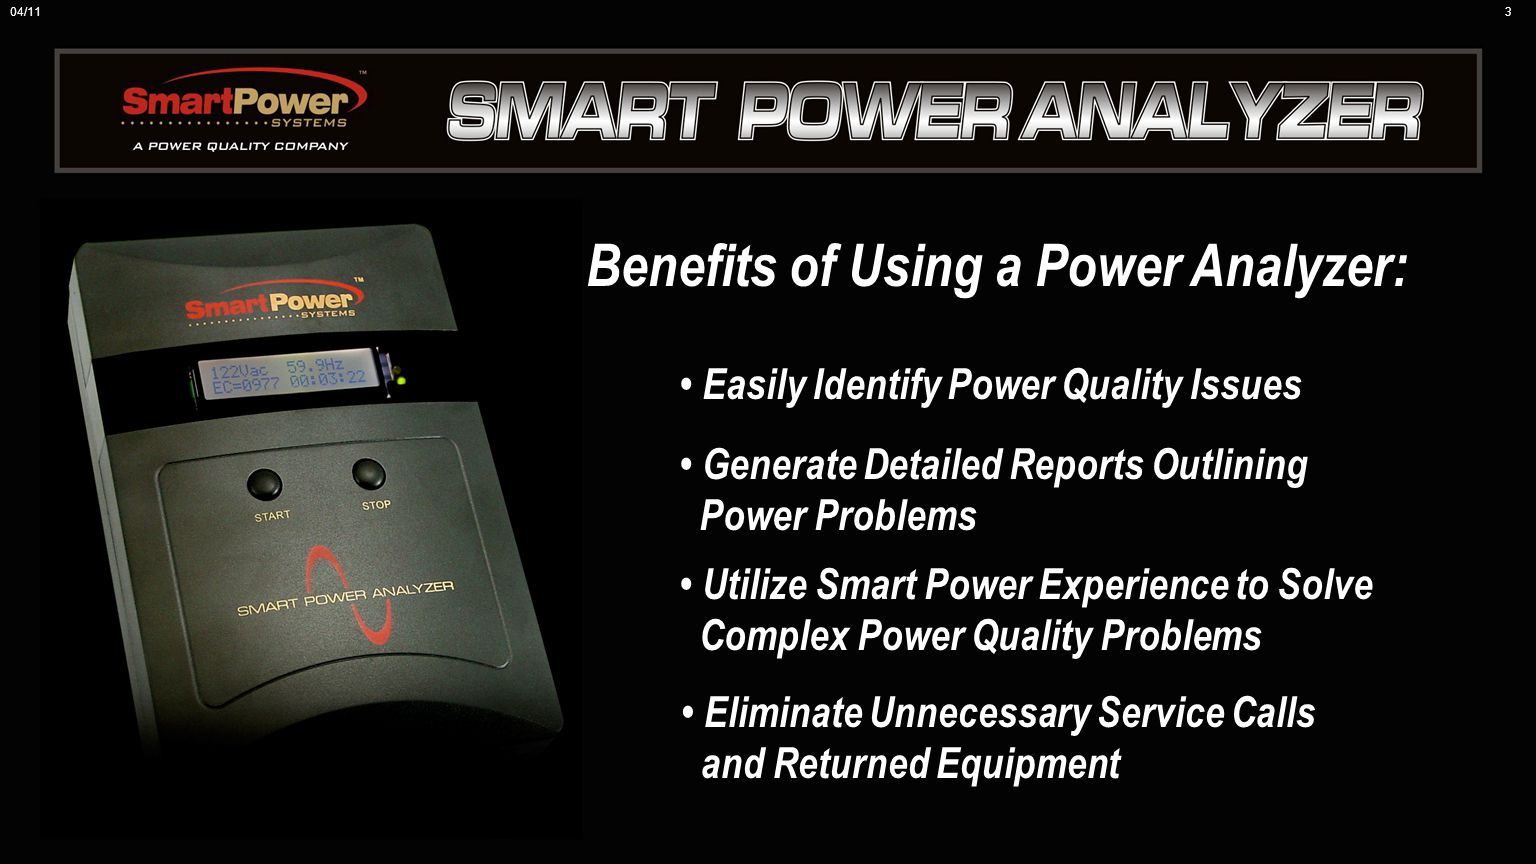 Benefits of Using a Power Analyzer: Easily Identify Power Quality Issues Generate Detailed Reports Outlining Power Problems Utilize Smart Power Experience to Solve Complex Power Quality Problems Eliminate Unnecessary Service Calls and Returned Equipment 04/113